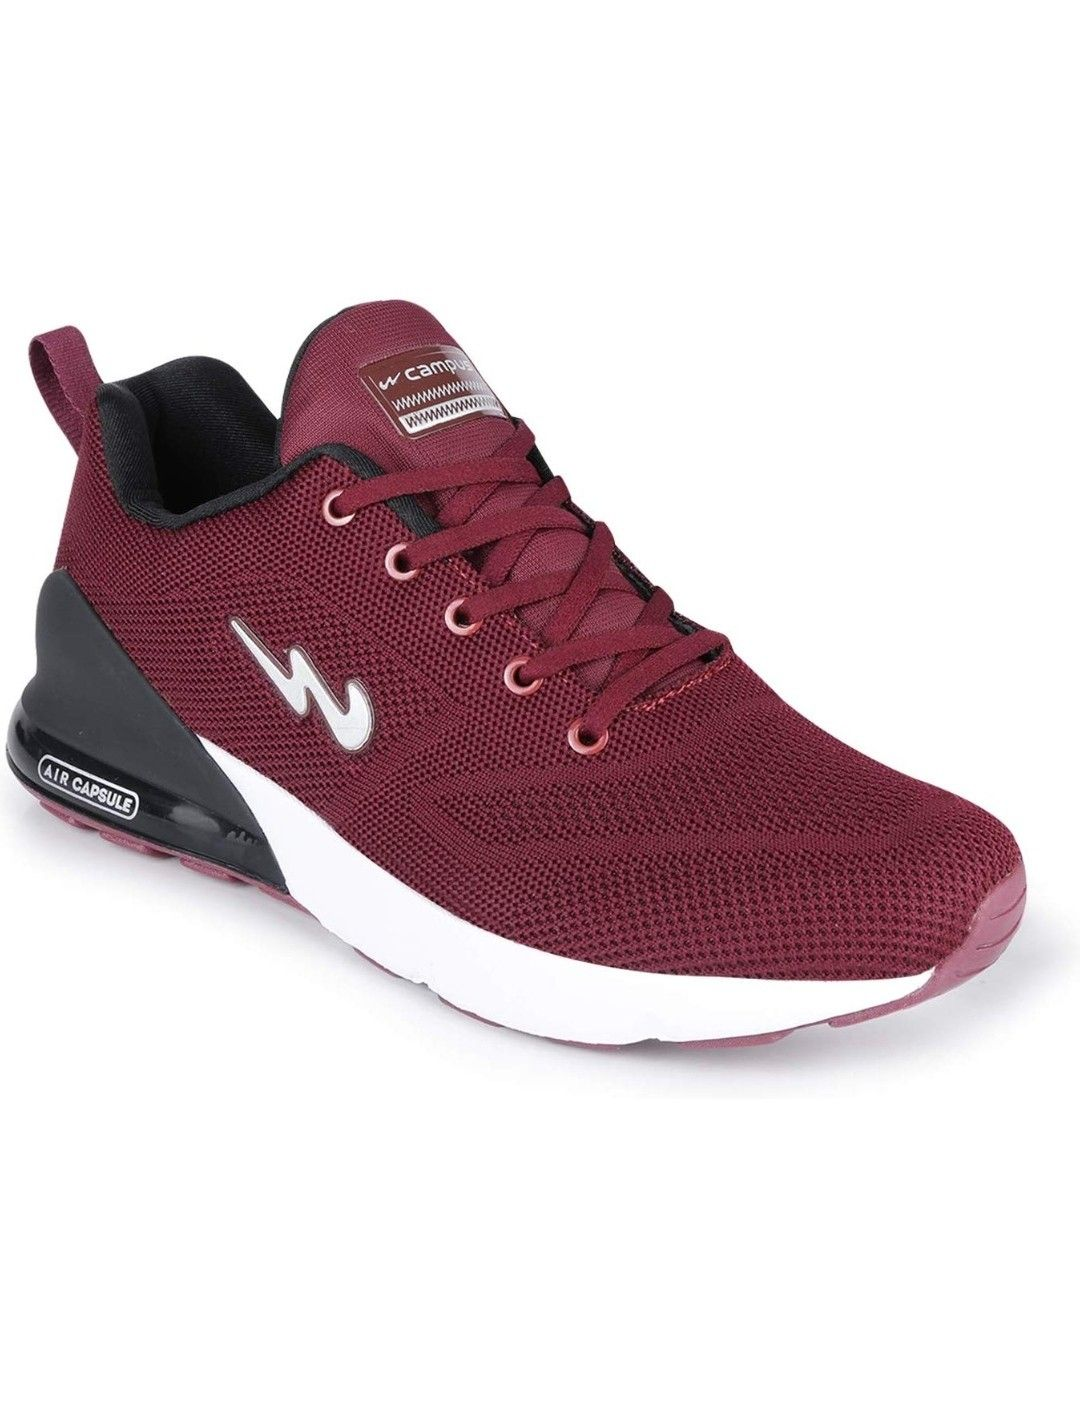 Campus Red Colour Sports Shoes for Men